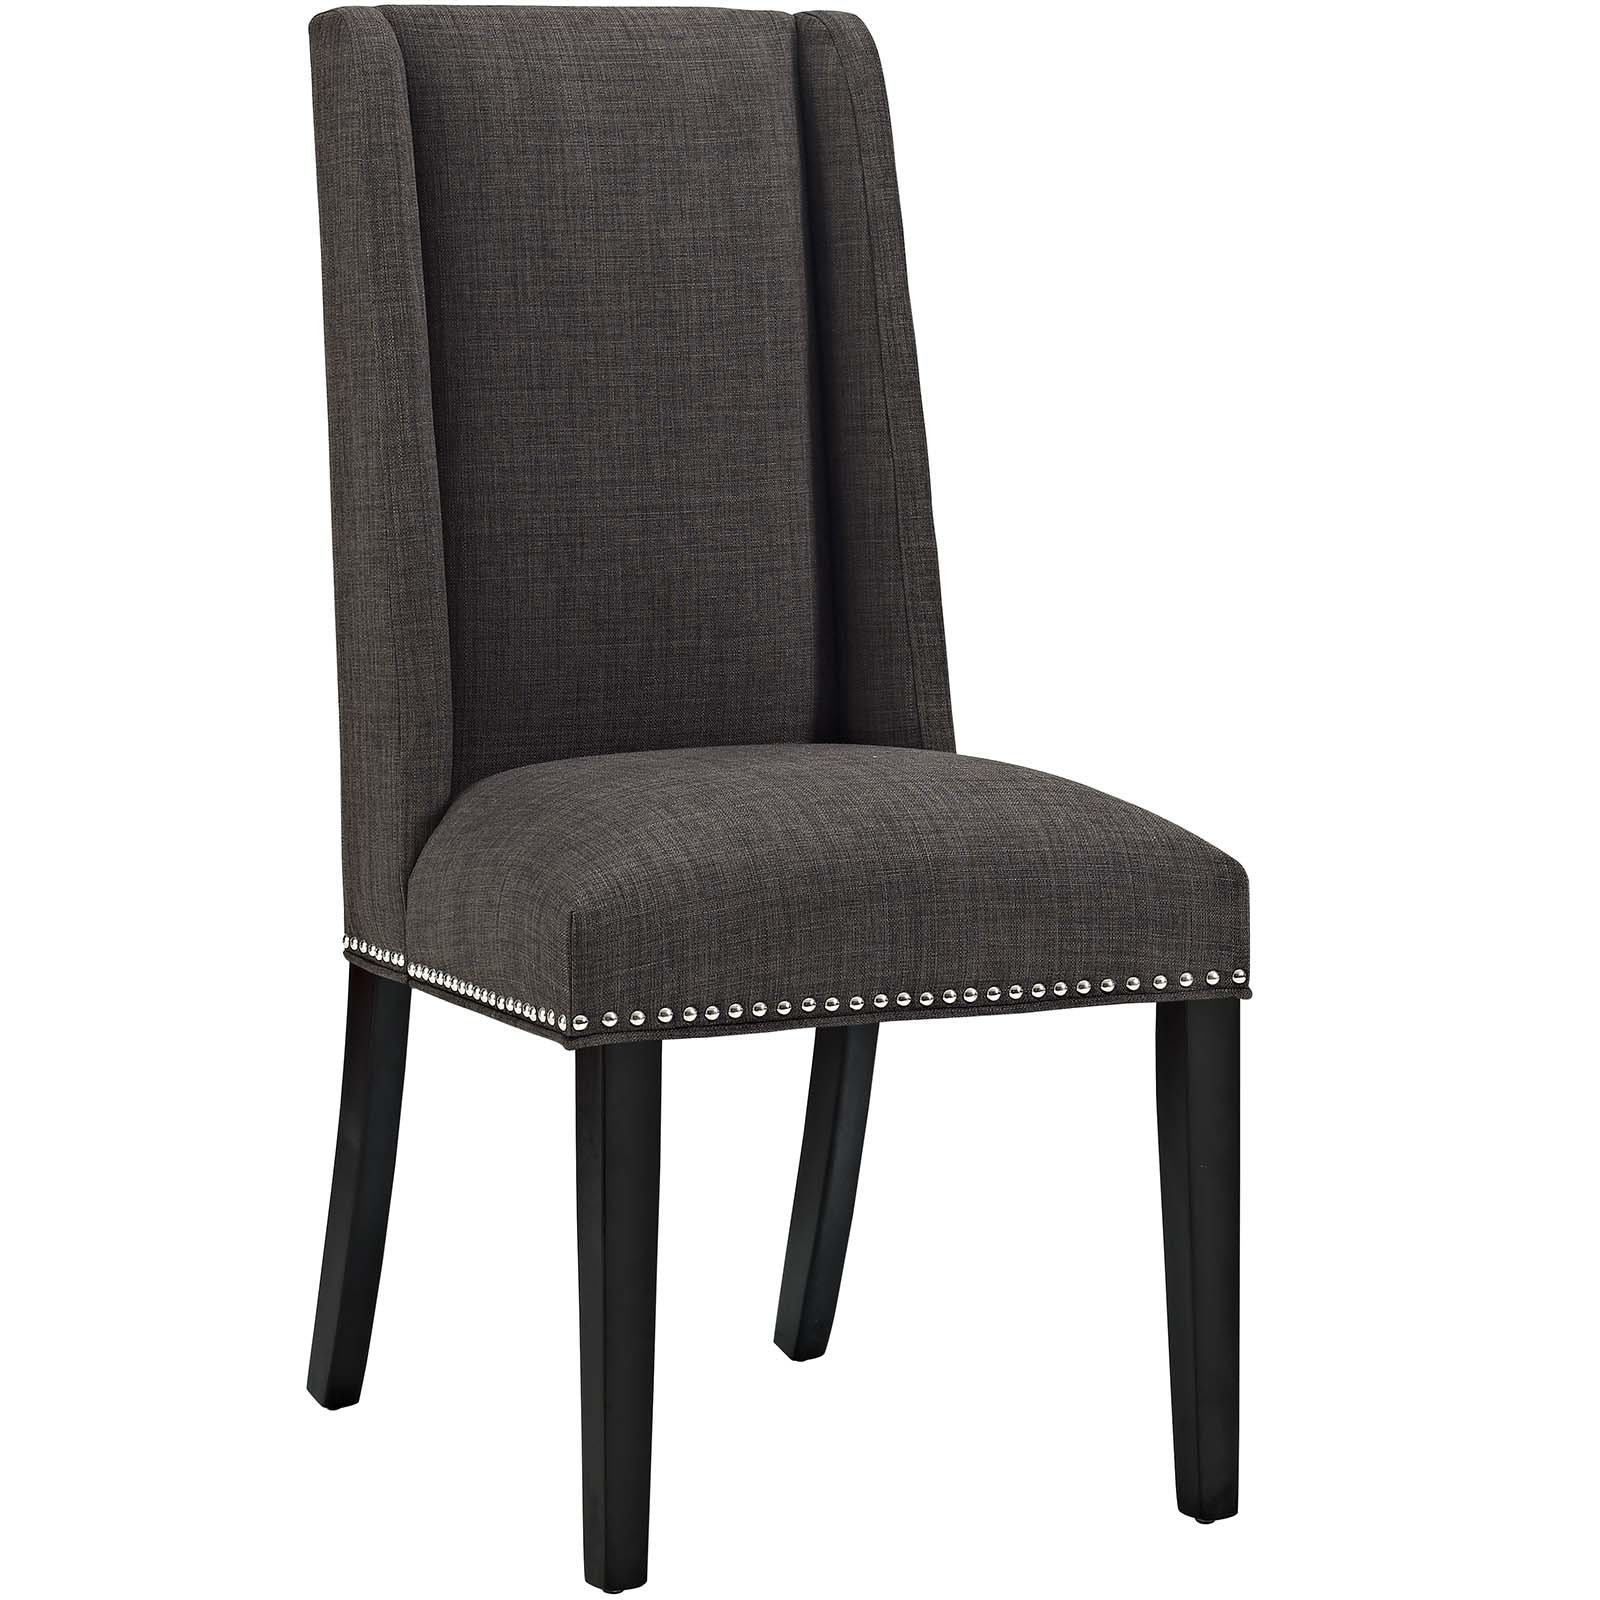 Modway Baron Upholstered Fabric Modern Tall Back Dining Parsons Chair Nailhead Trim Wood Legs in Brown